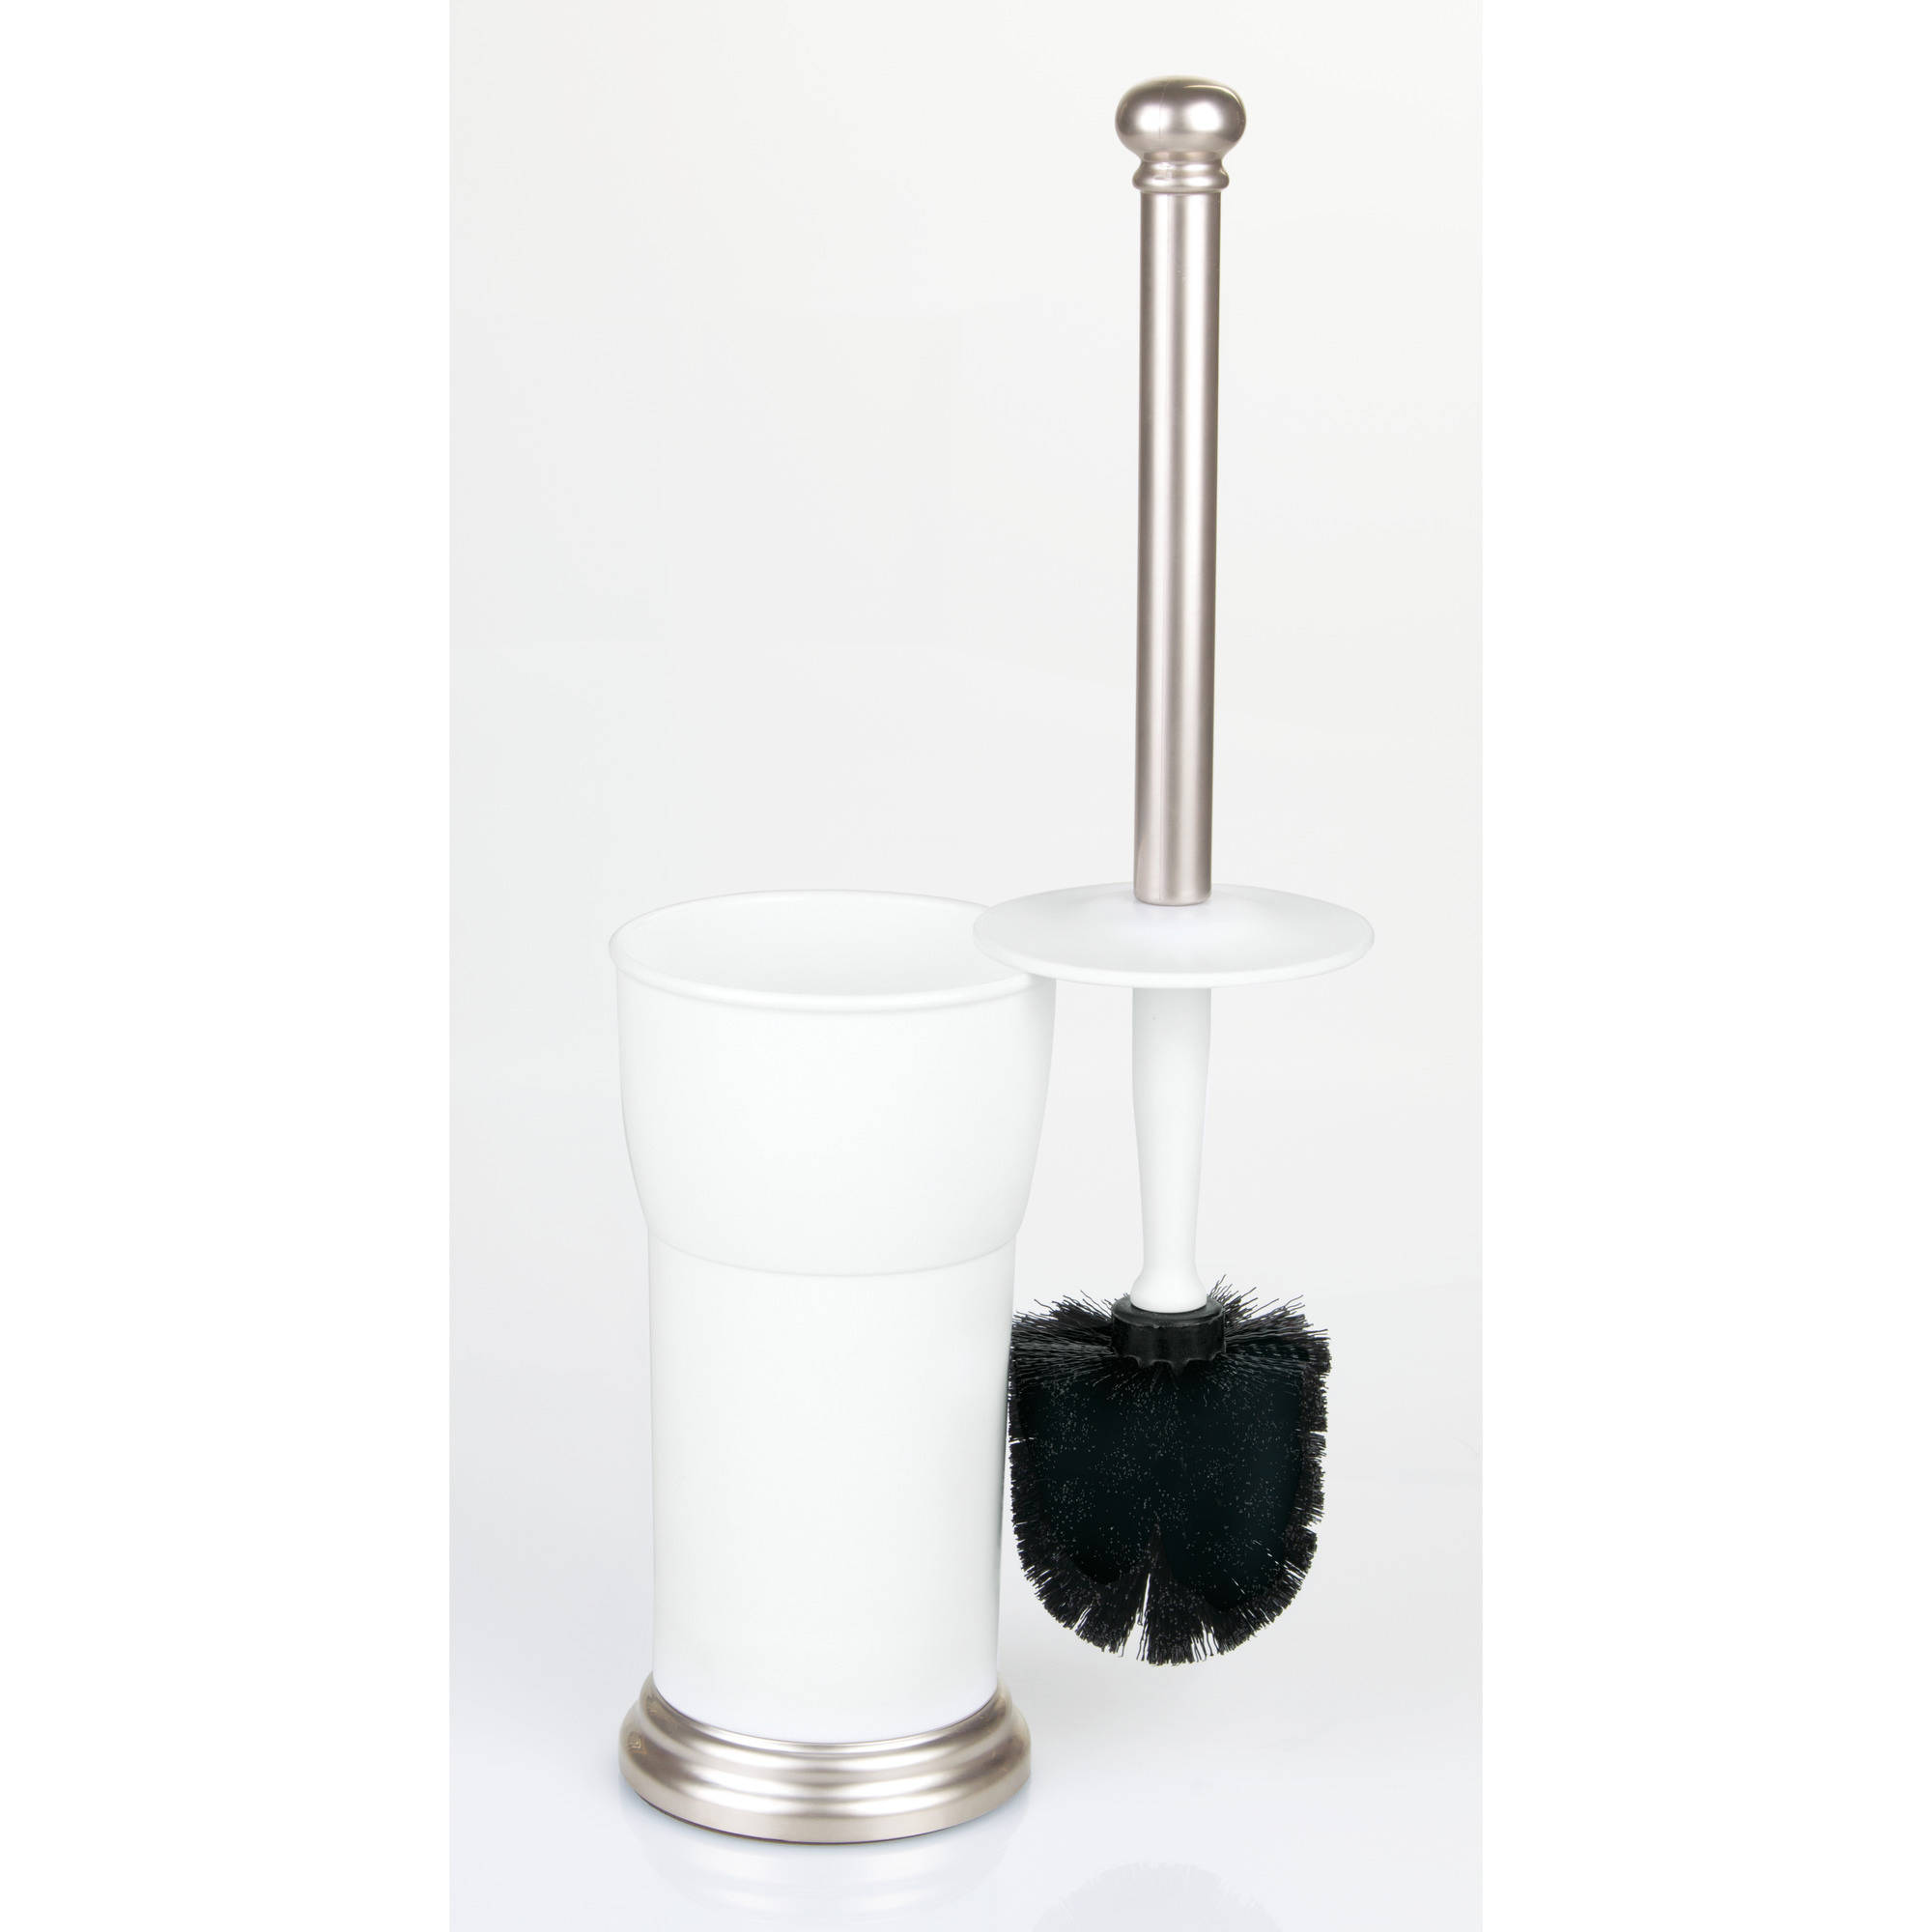 Better Homes and Gardens Bathroom Toilet Bowl Brush Holder, White Satin by INTERDESIGN